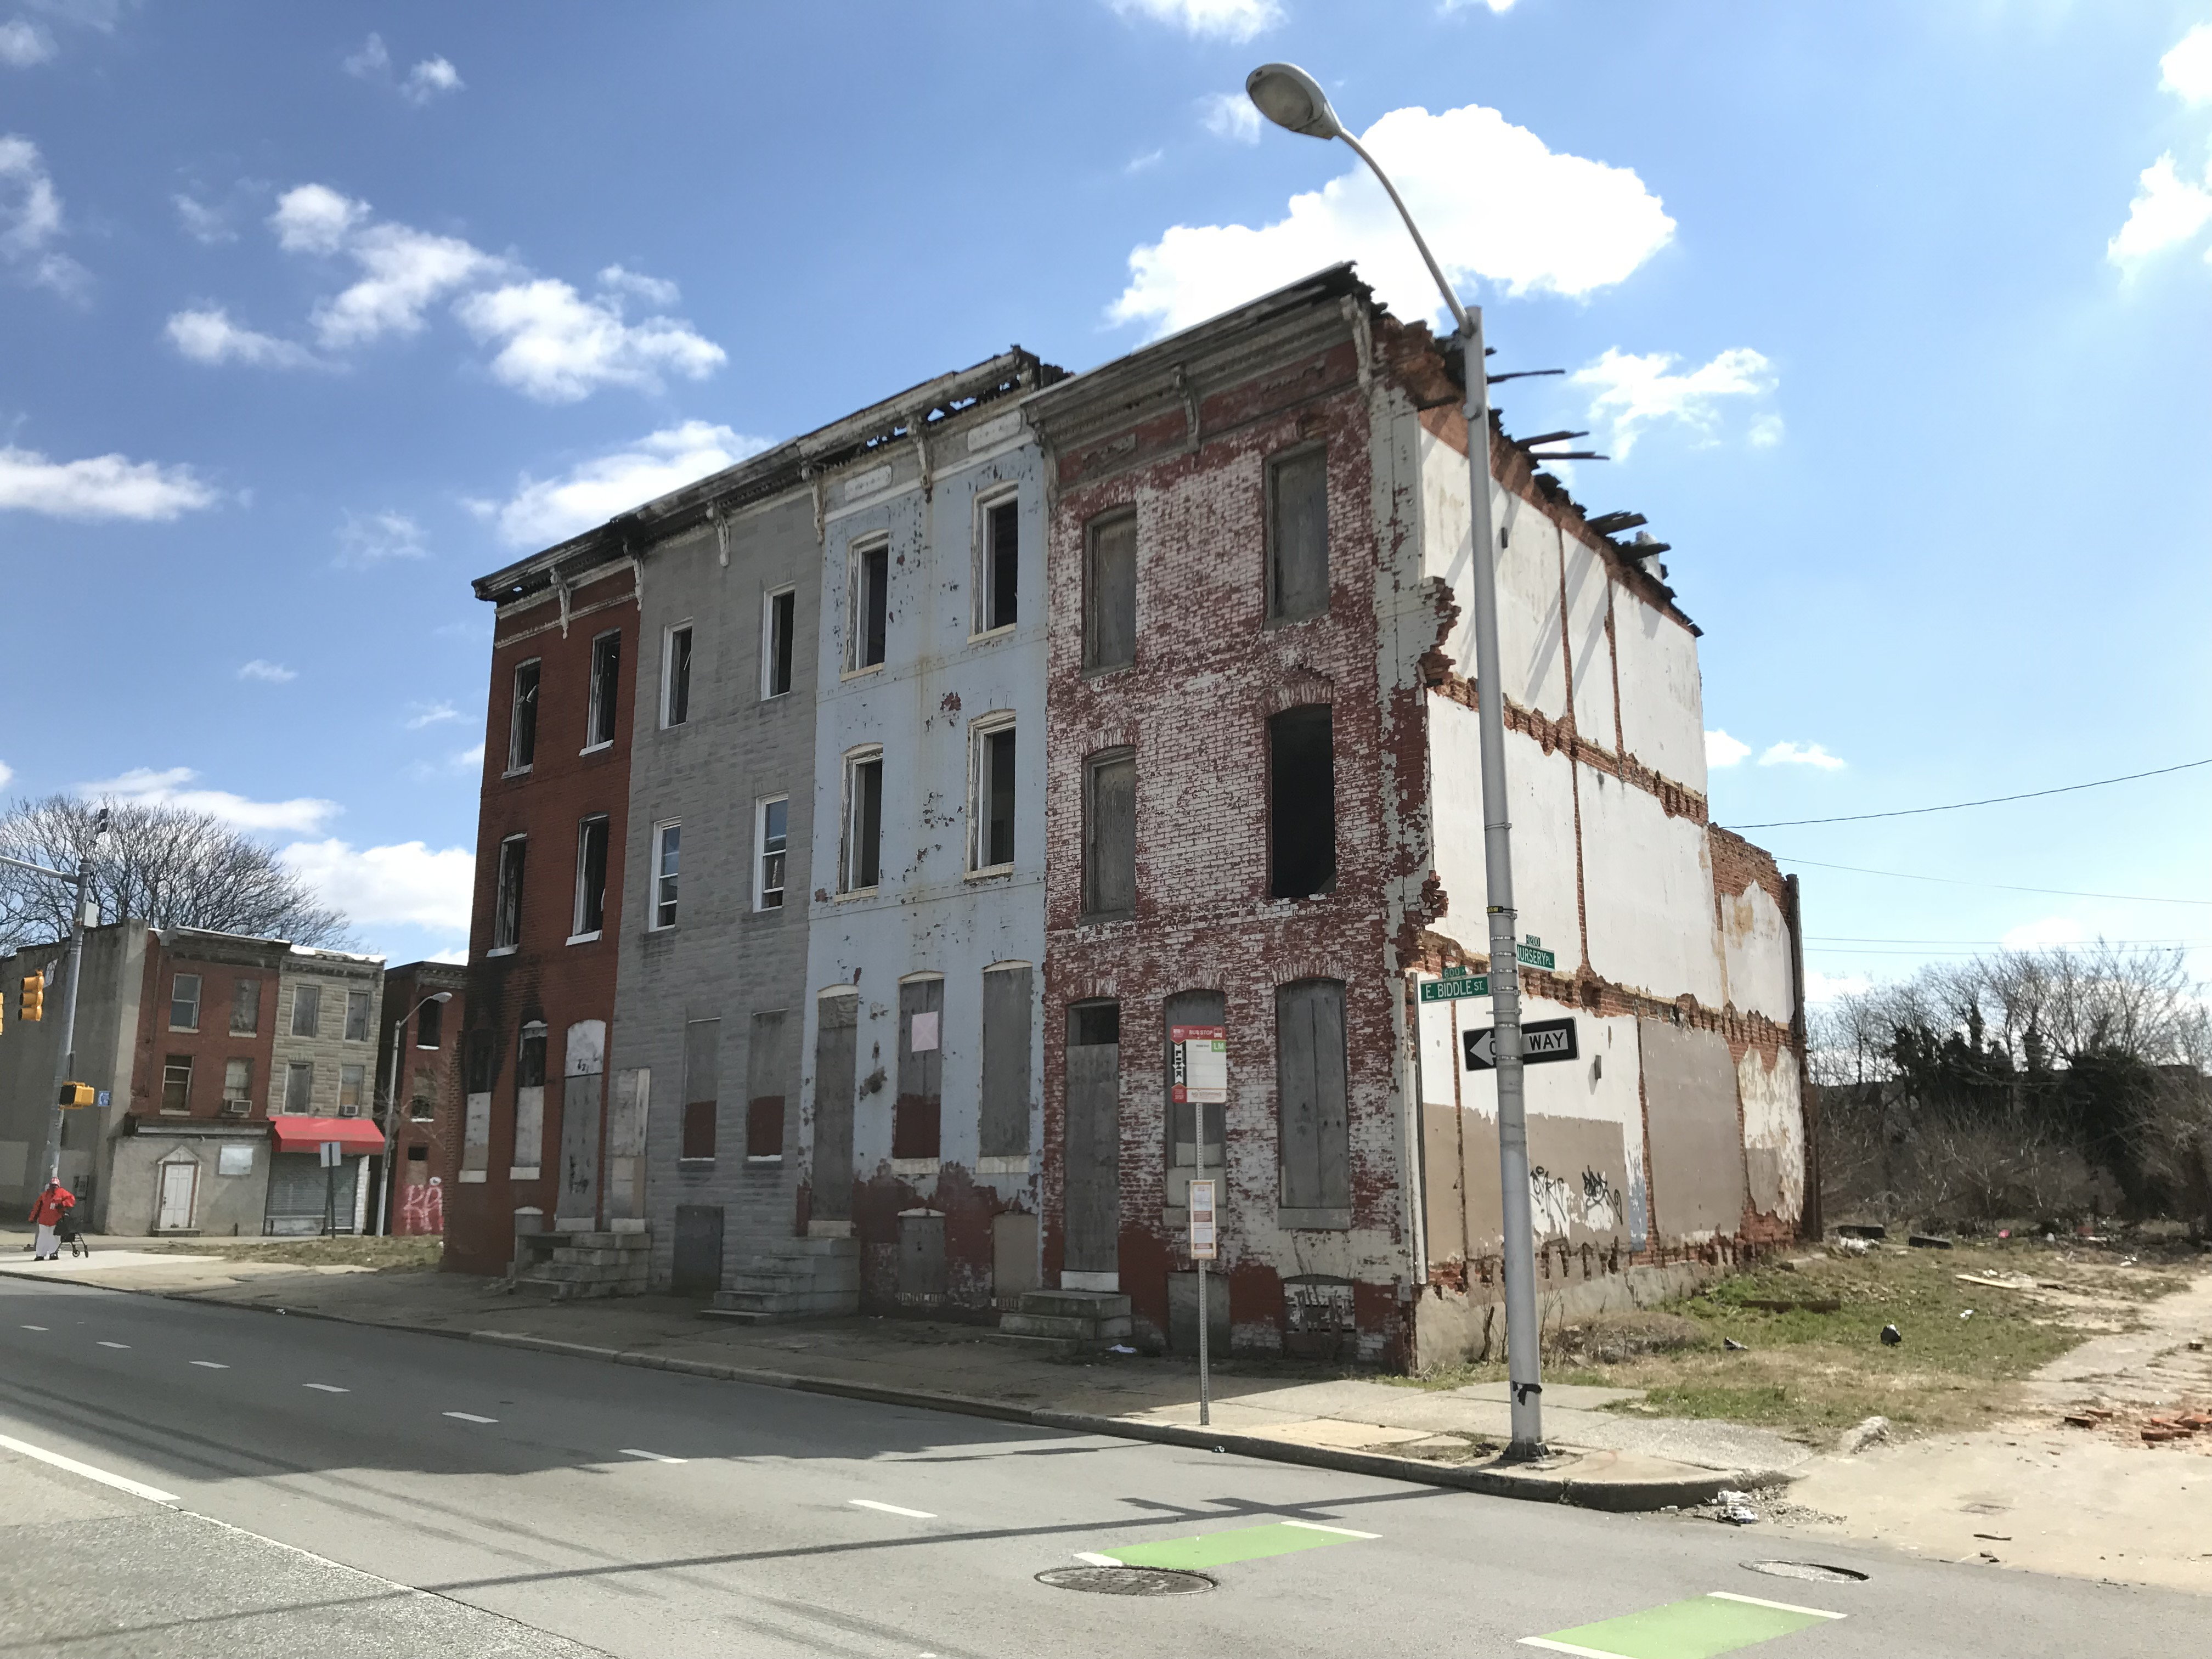 Rowhouse group, 615-621 e. biddle street, baltimore, md 21202 photo